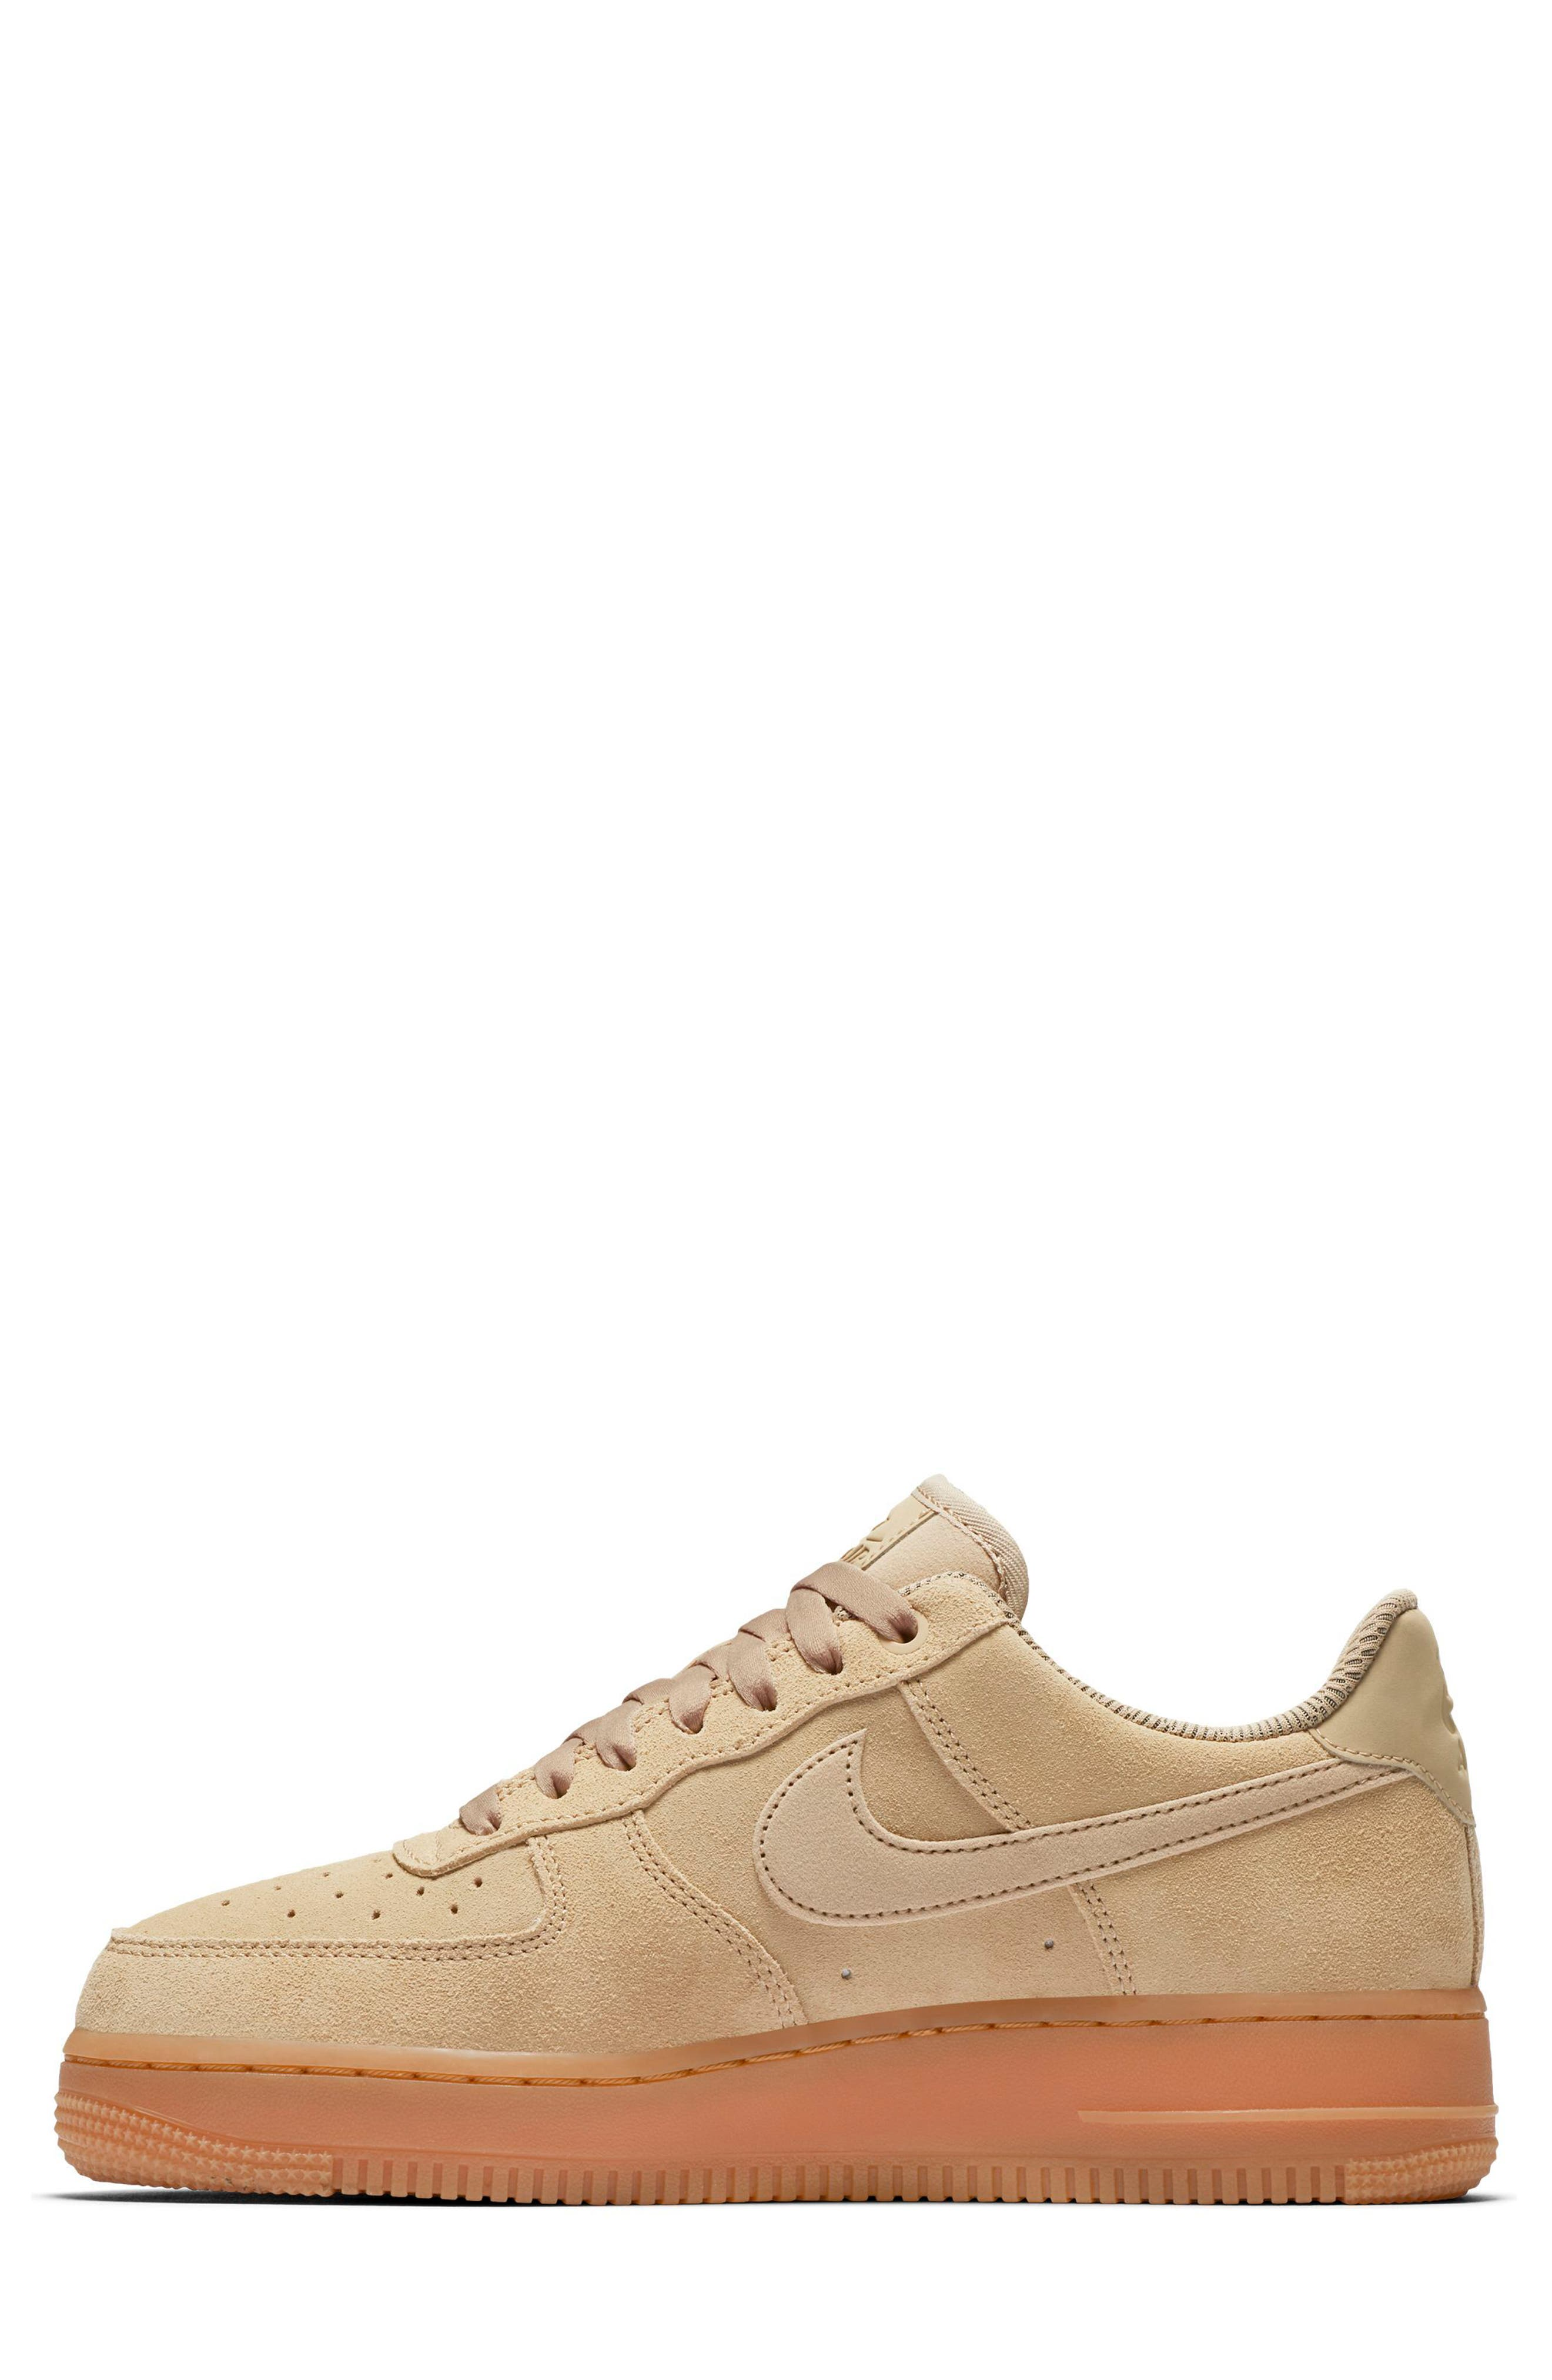 beige color nike shoes 914588